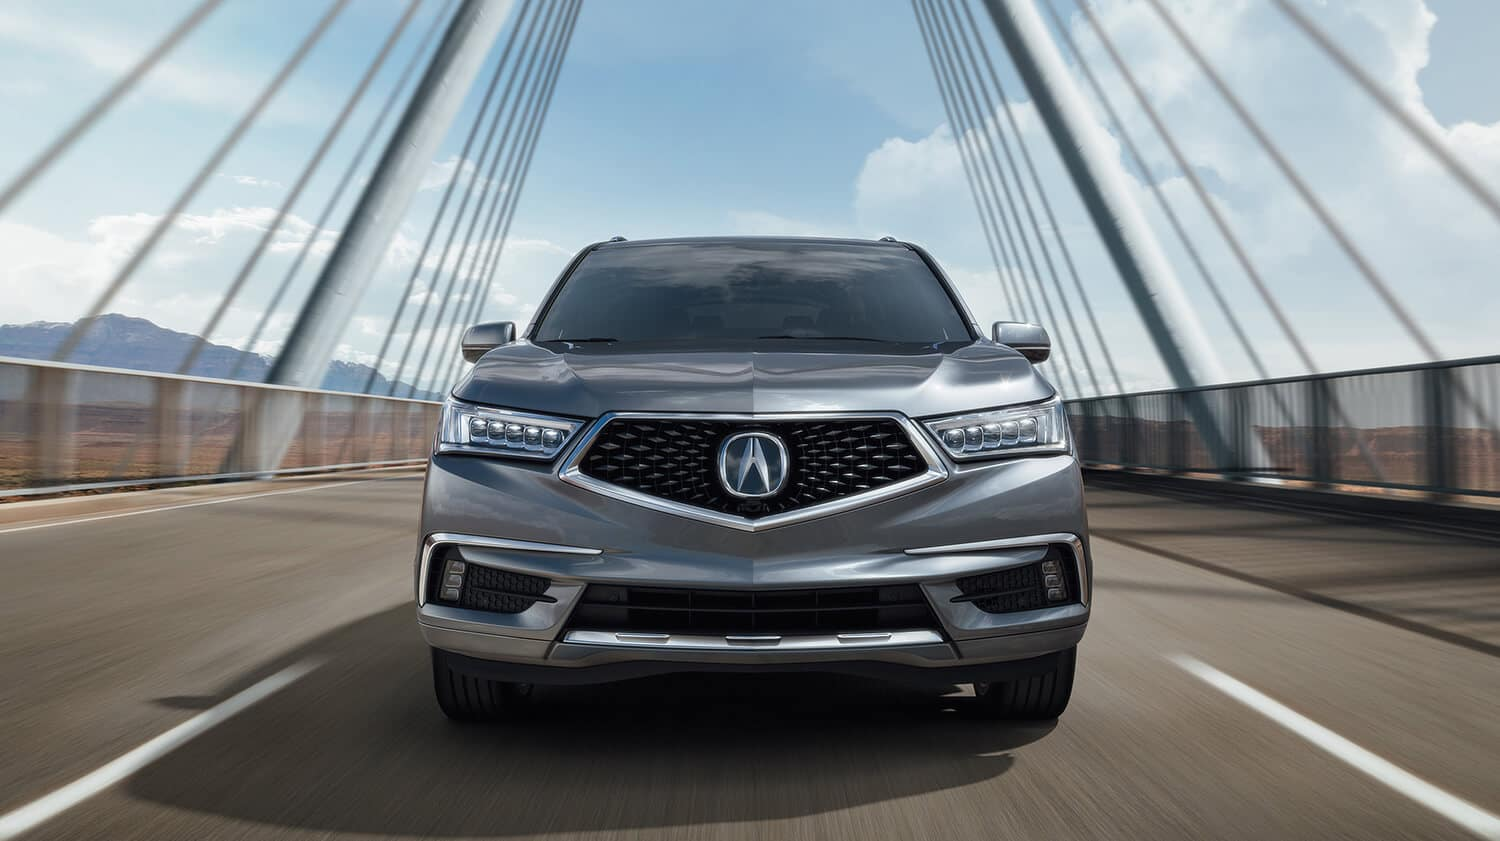 2019 Acura MDX Exterior Front Grille